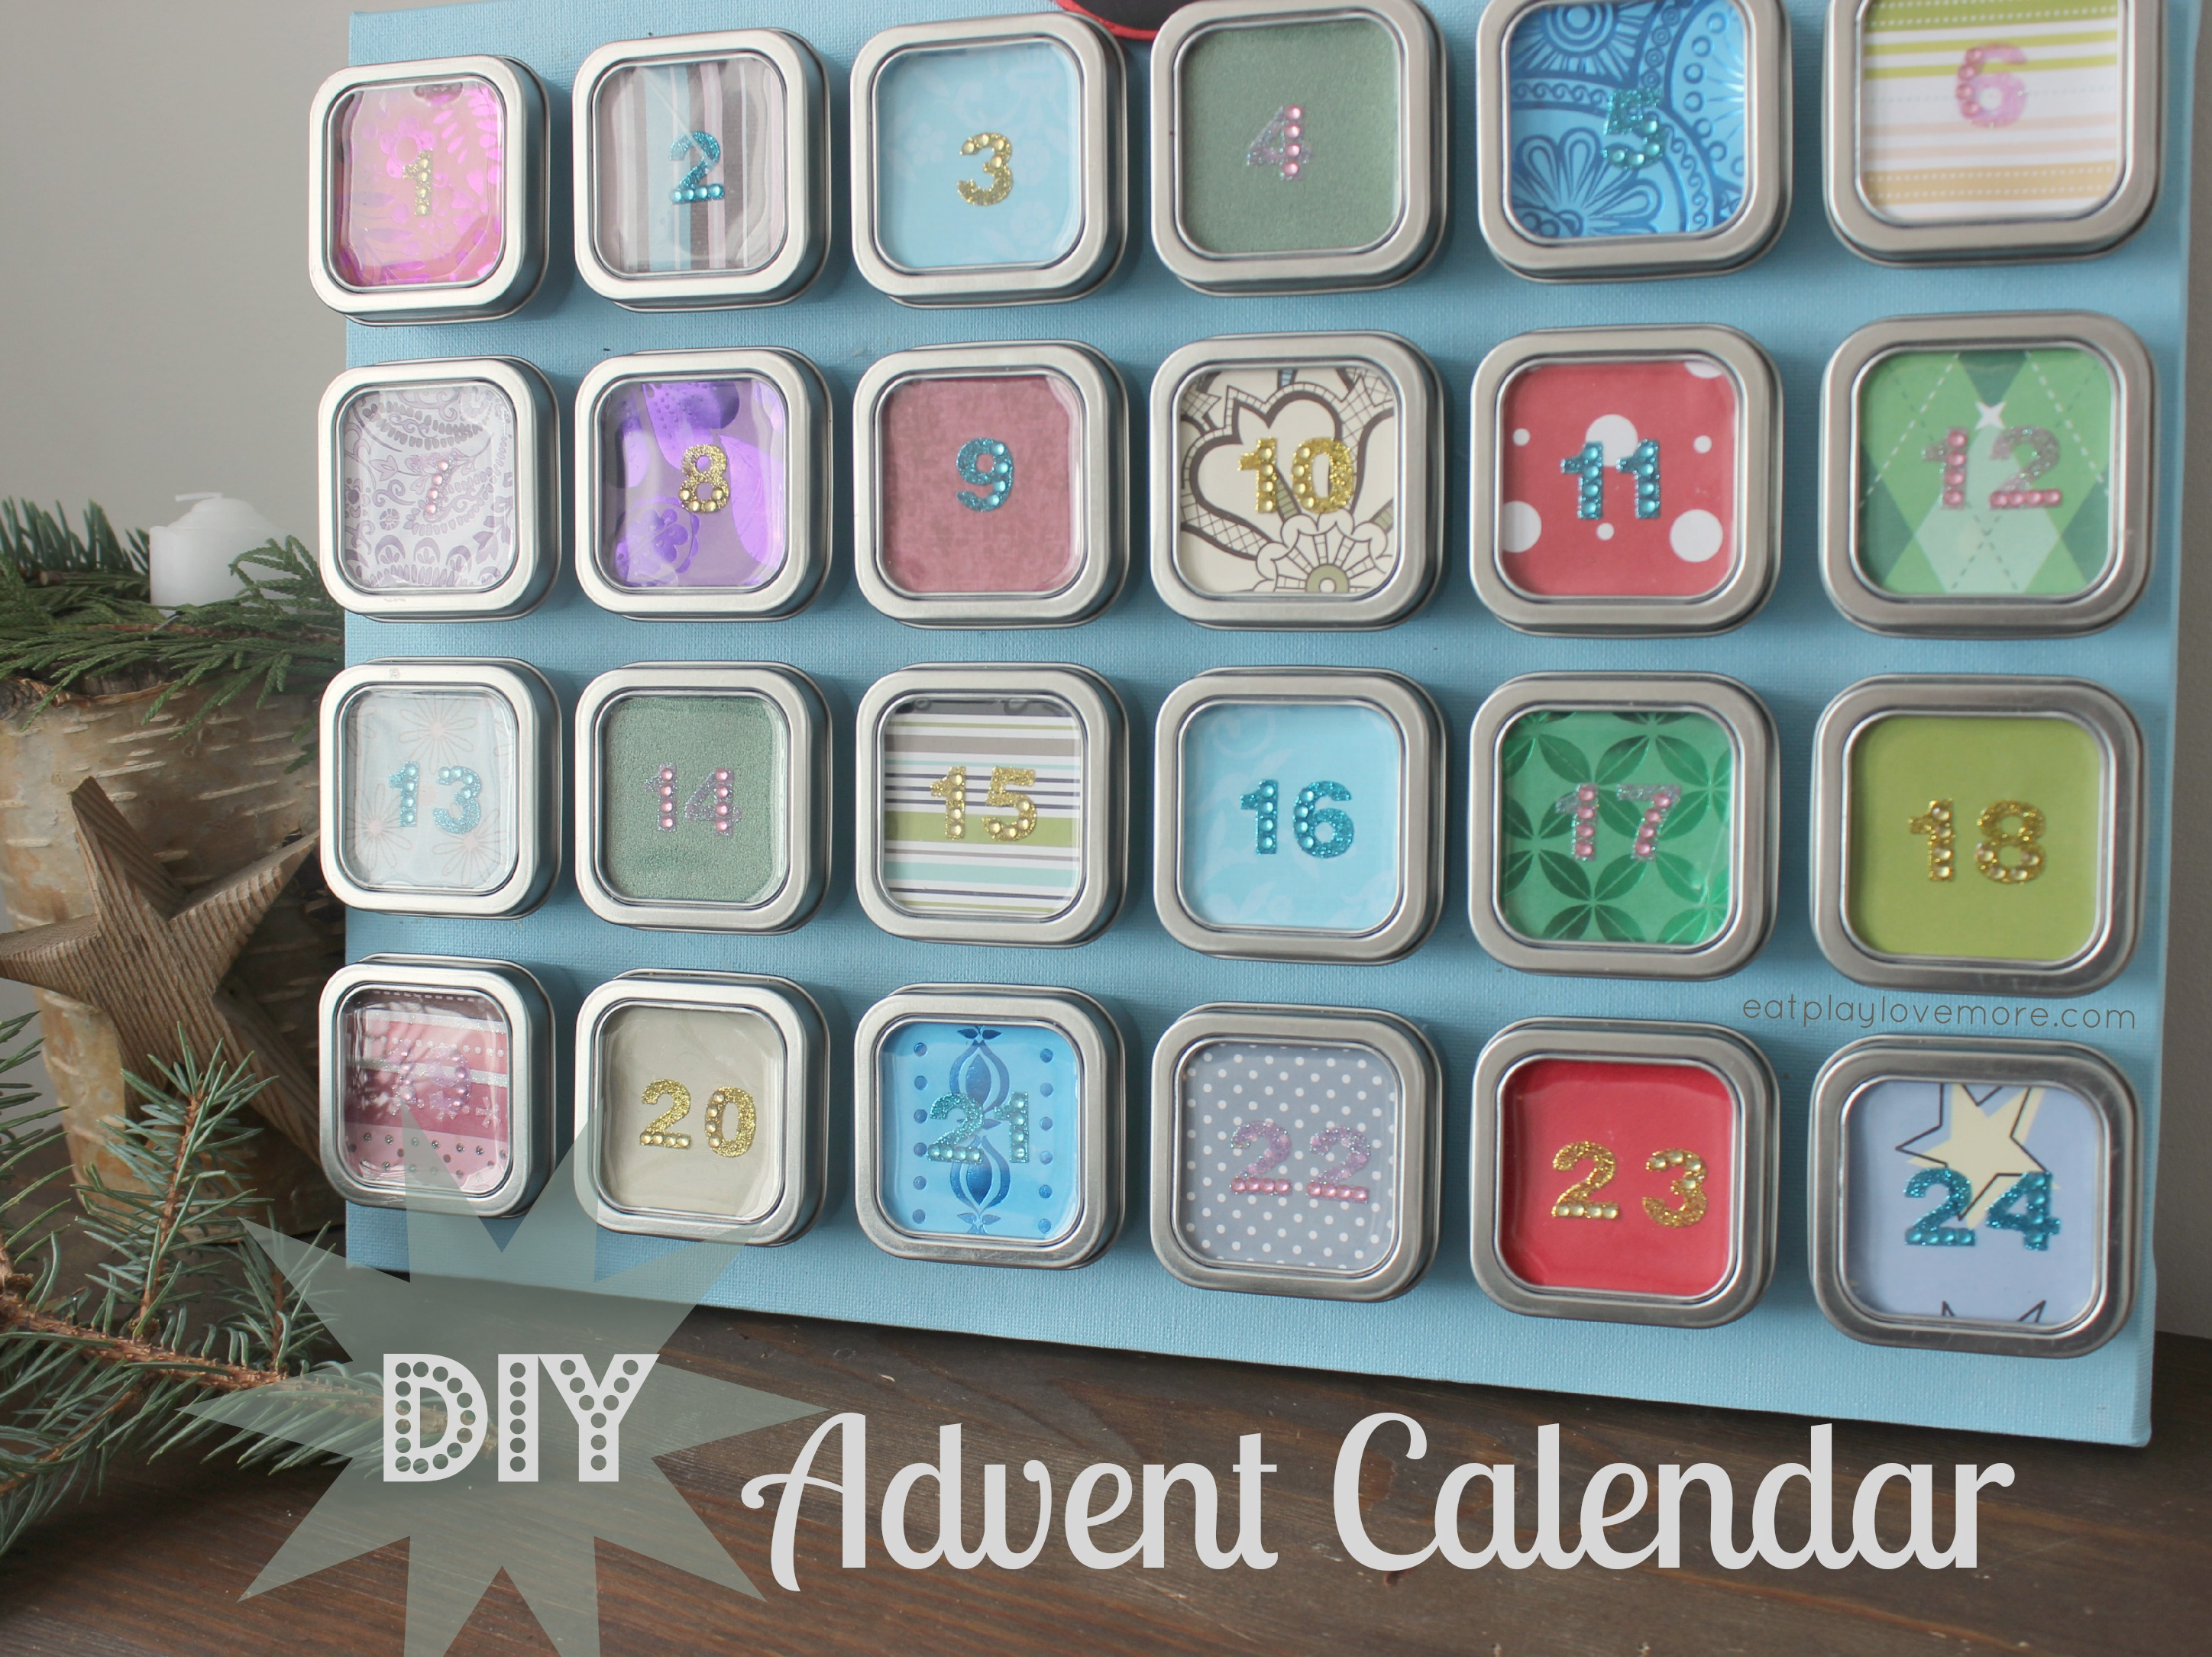 Diy Kids Calendar : Eat play love more live laugh